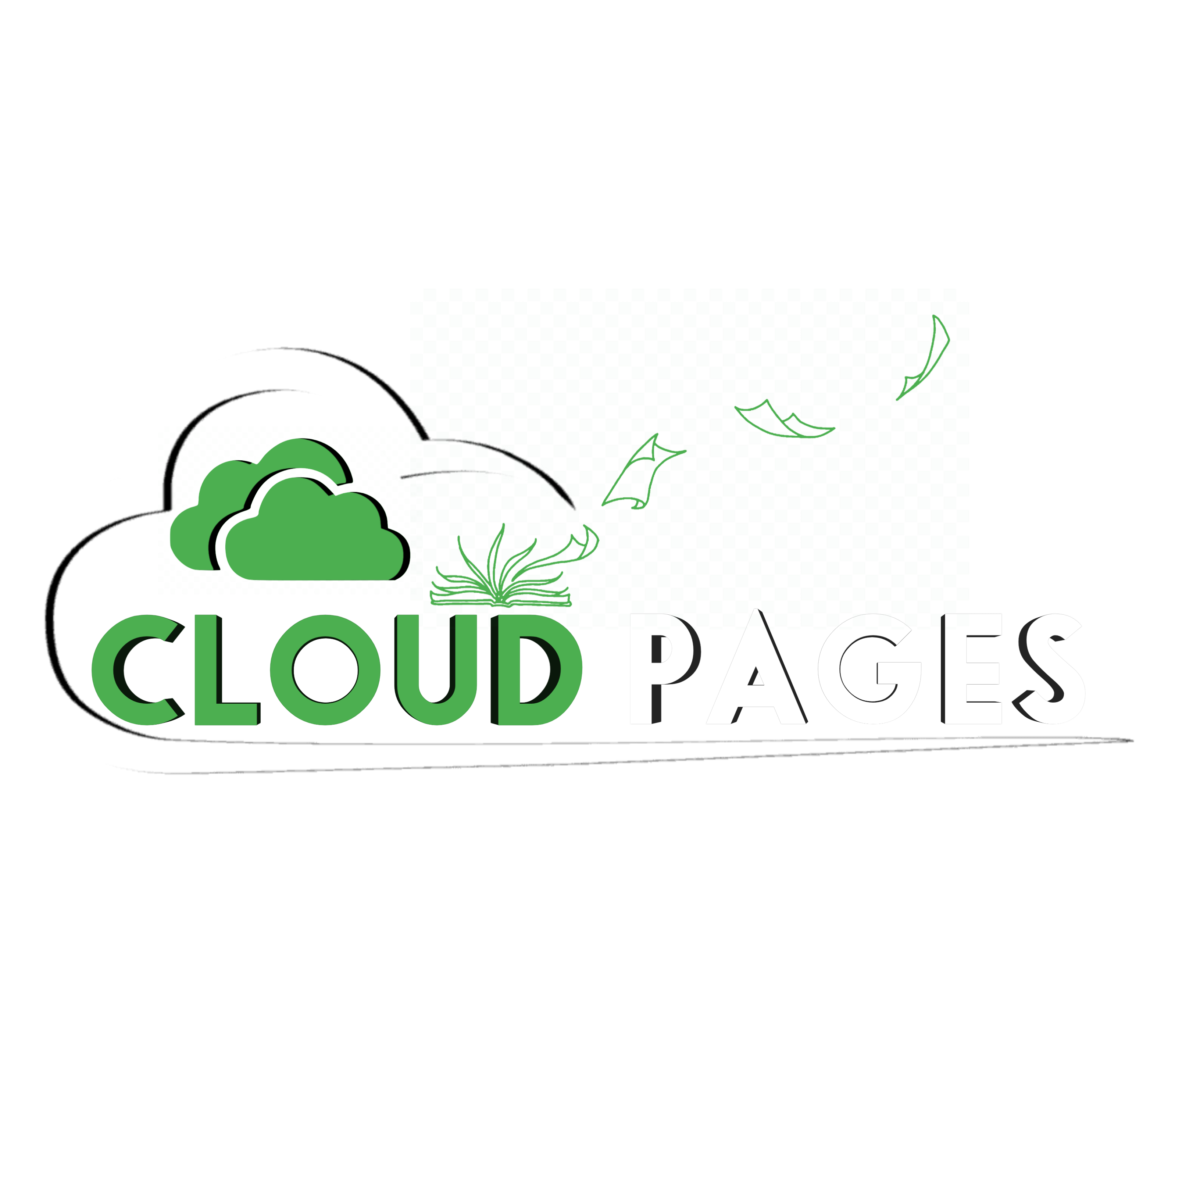 cloudpages logo